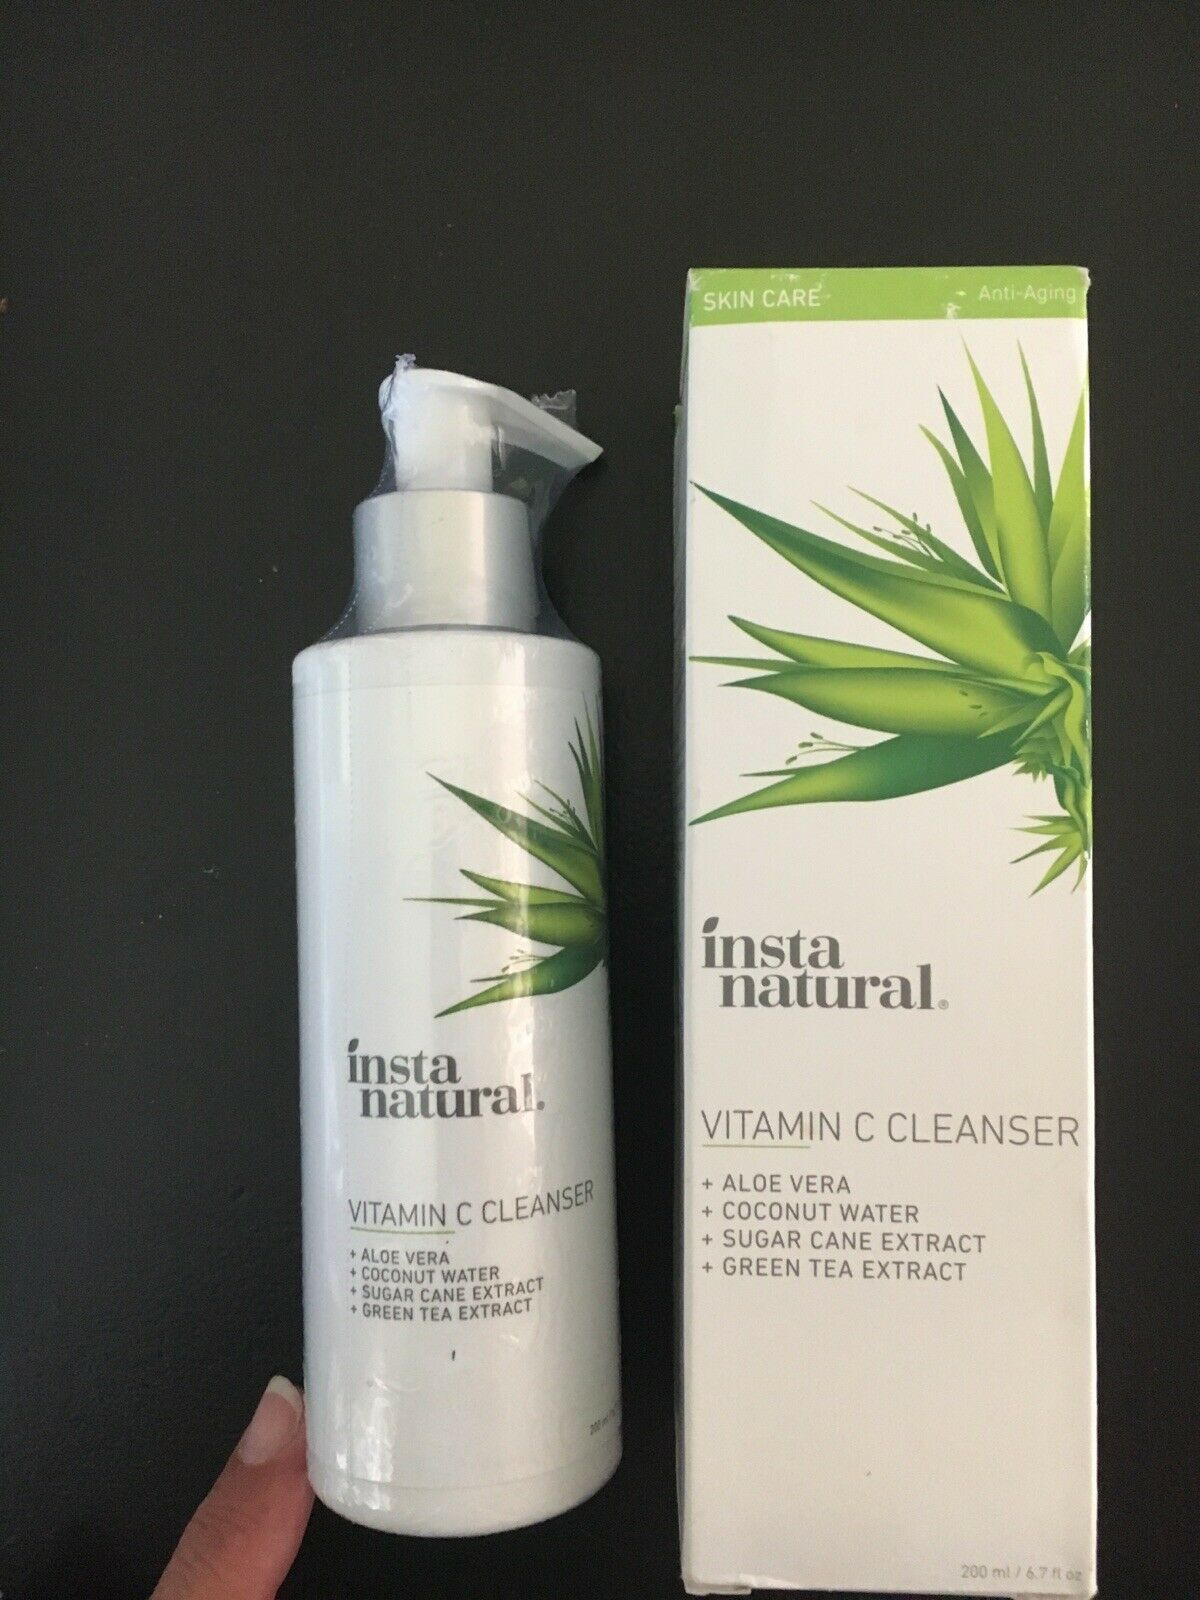 Insta Natural Vitamin C Cleanser Aloe,Coconut Water & More, SHIPS FREE, Sealed 1